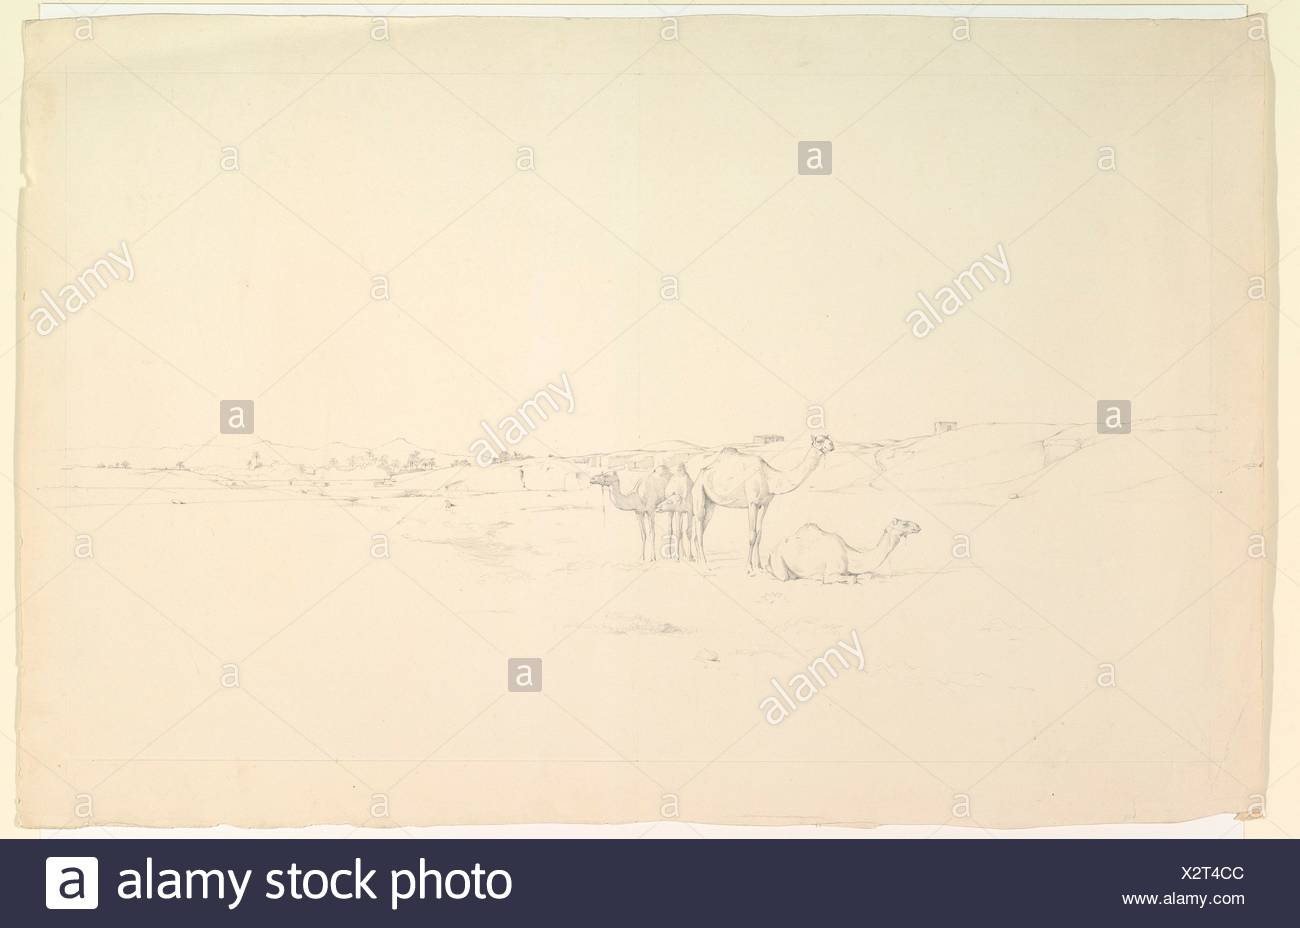 Camels in a landscape. Artist: Howard Carter (British, London 1873-1939 London); Date: late 19th-mid-20th century; Medium: Graphite; Dimensions: - Stock Image